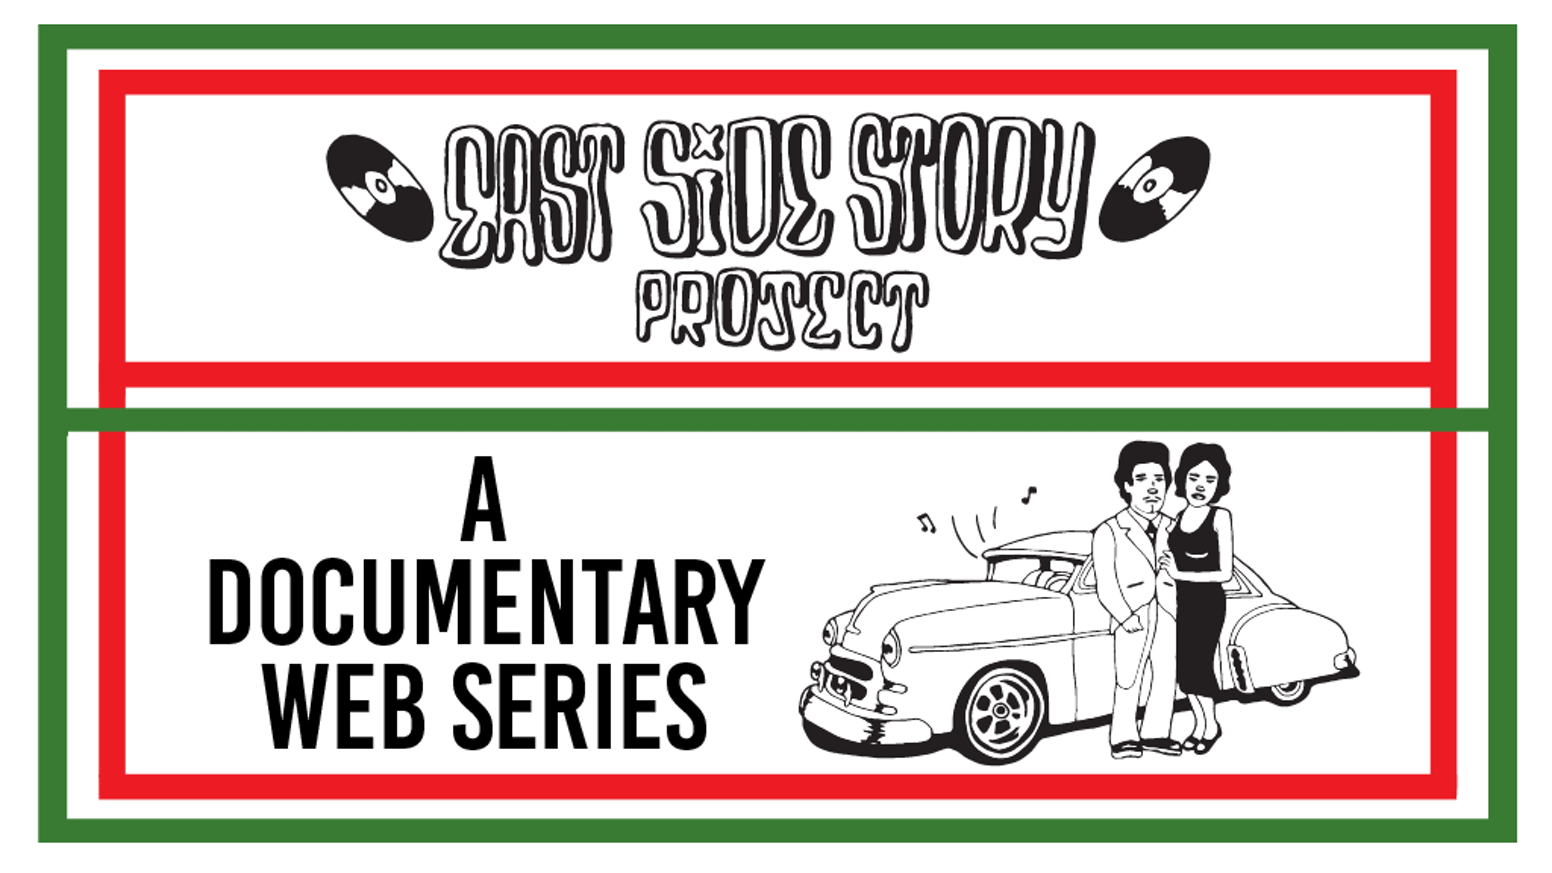 The East Side Story Project is now becoming a documentary web series.